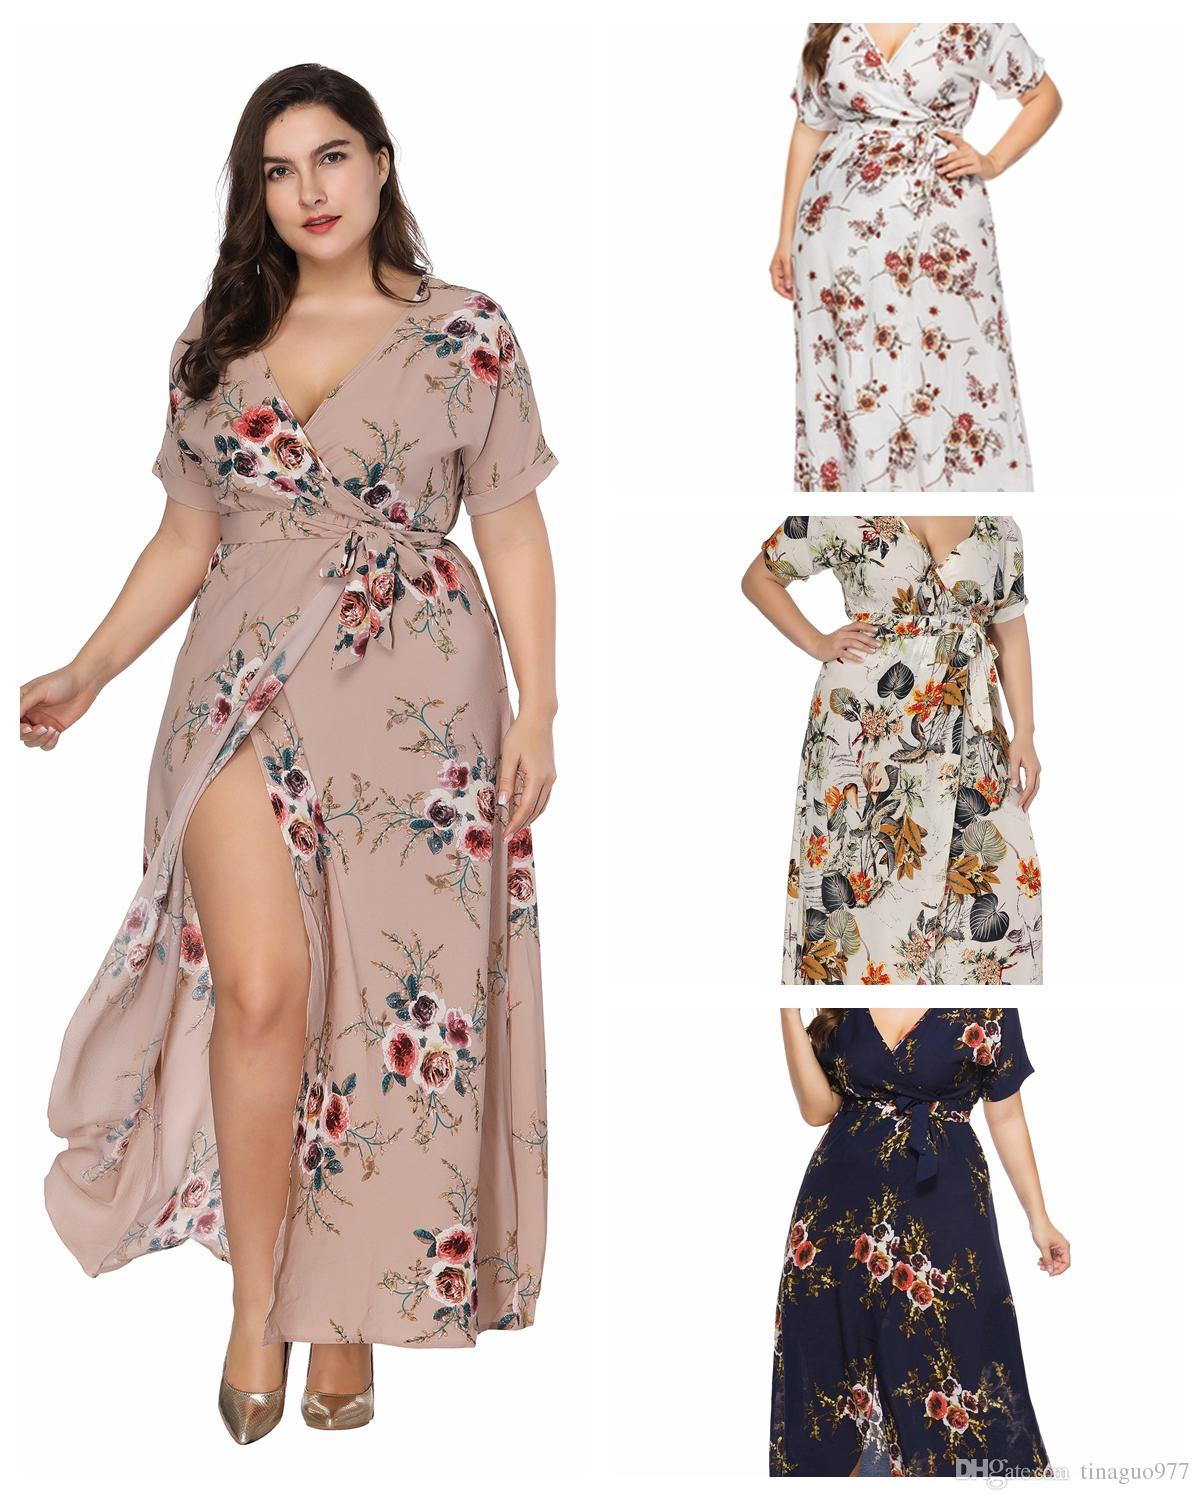 27d4ef72eb0 2019 Women S Clothing Plus Size Floral Print Maxi Dresses V Neck Short  Sleeve Big Size Bohemian Dress From Tinaguo977